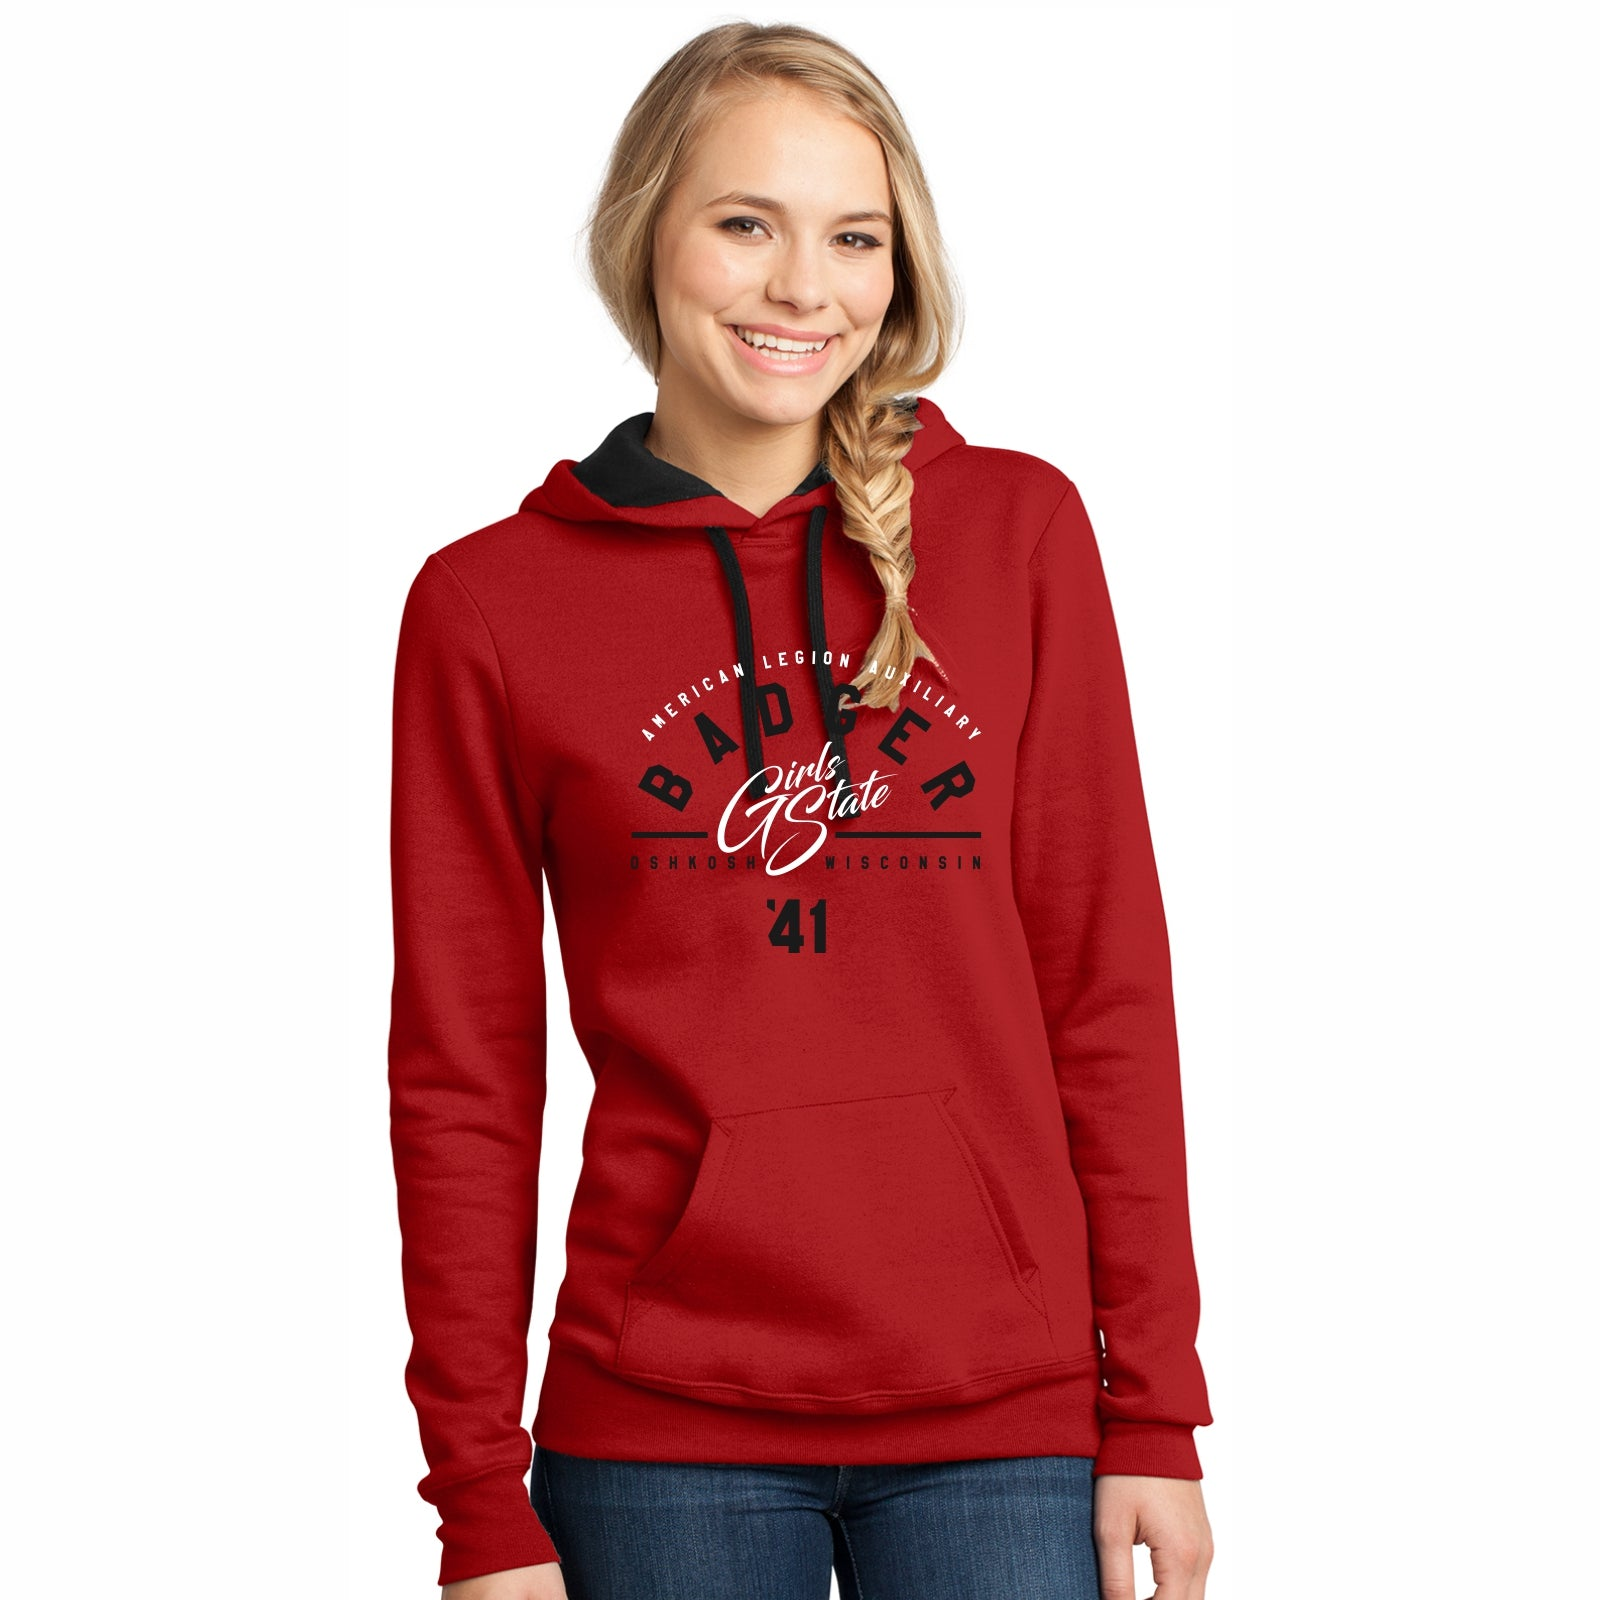 Red Hoodie with Black Details